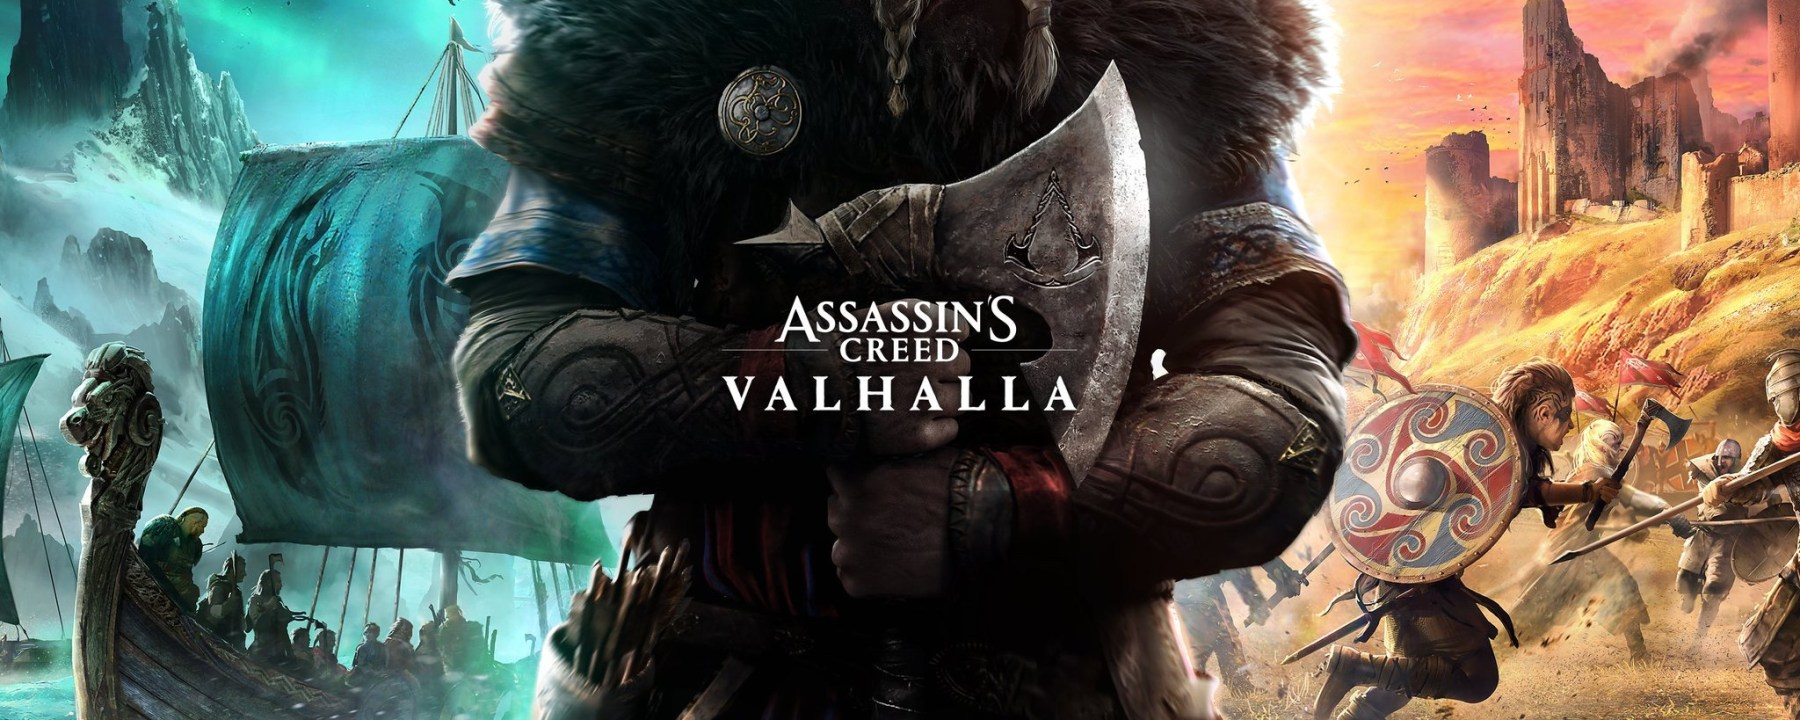 Assassins Creed Vahalla Teaser Art